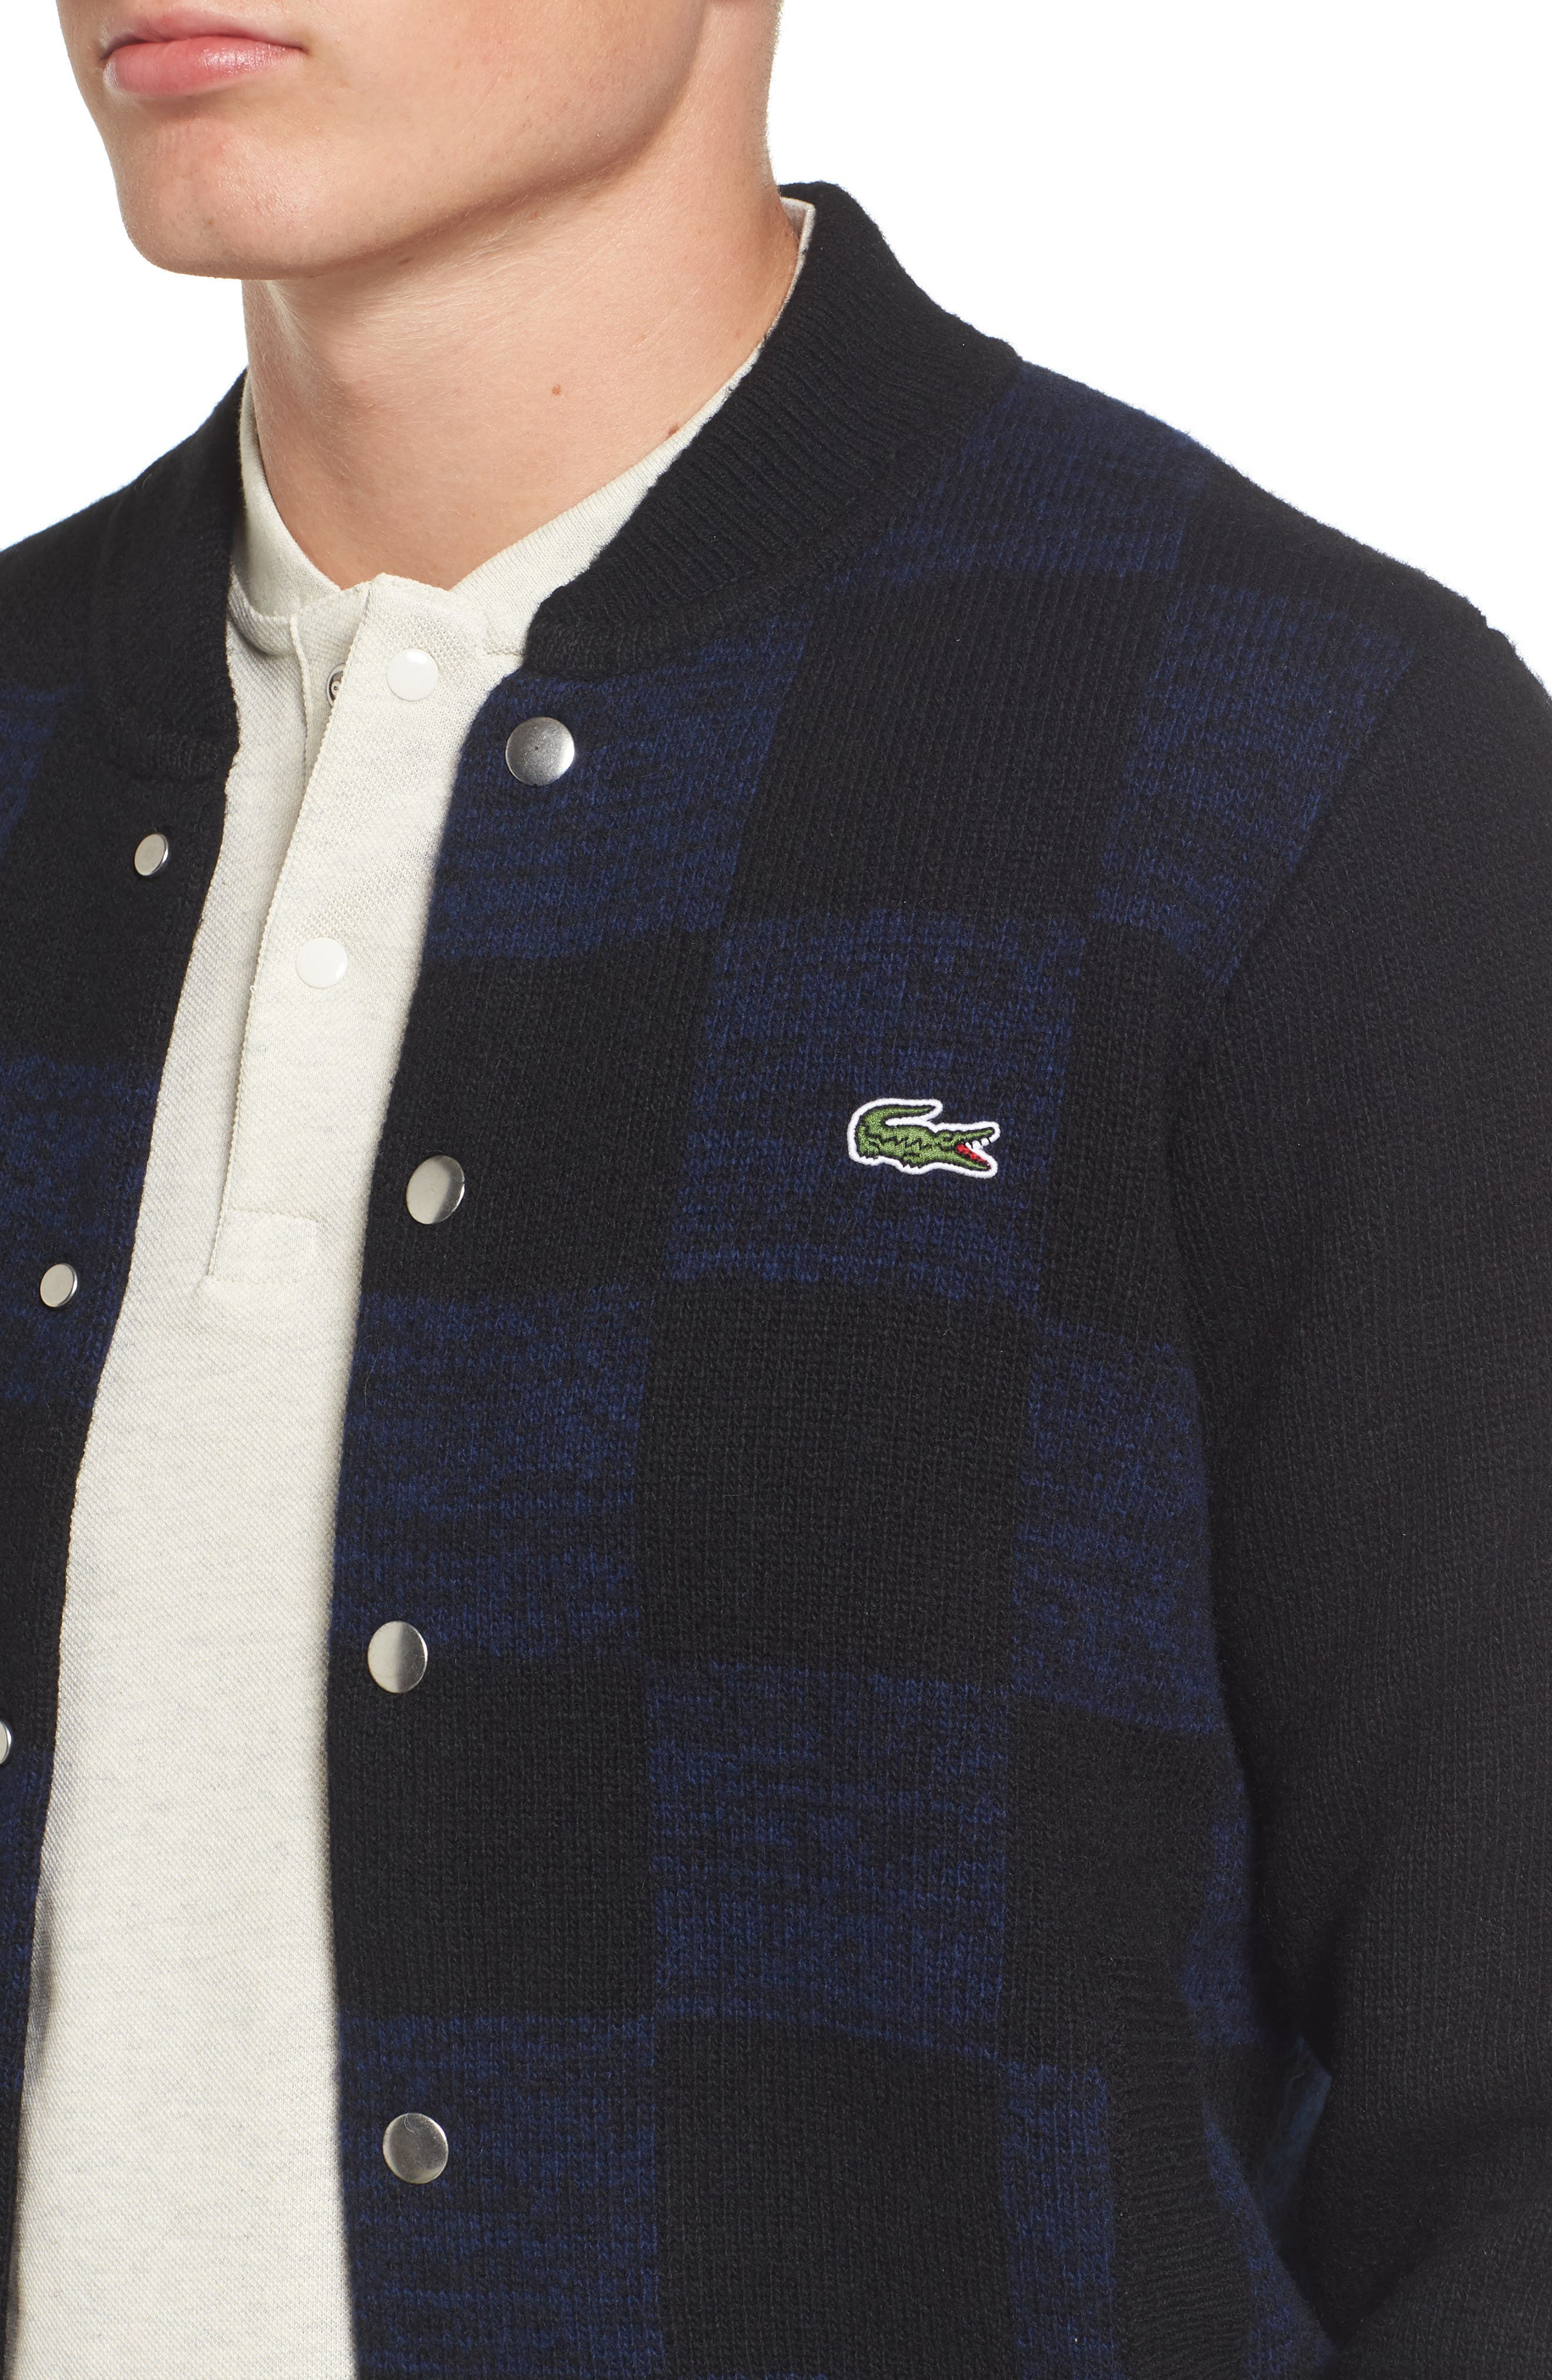 Double Face Check Sweater Jacket,                             Alternate thumbnail 4, color,                             006